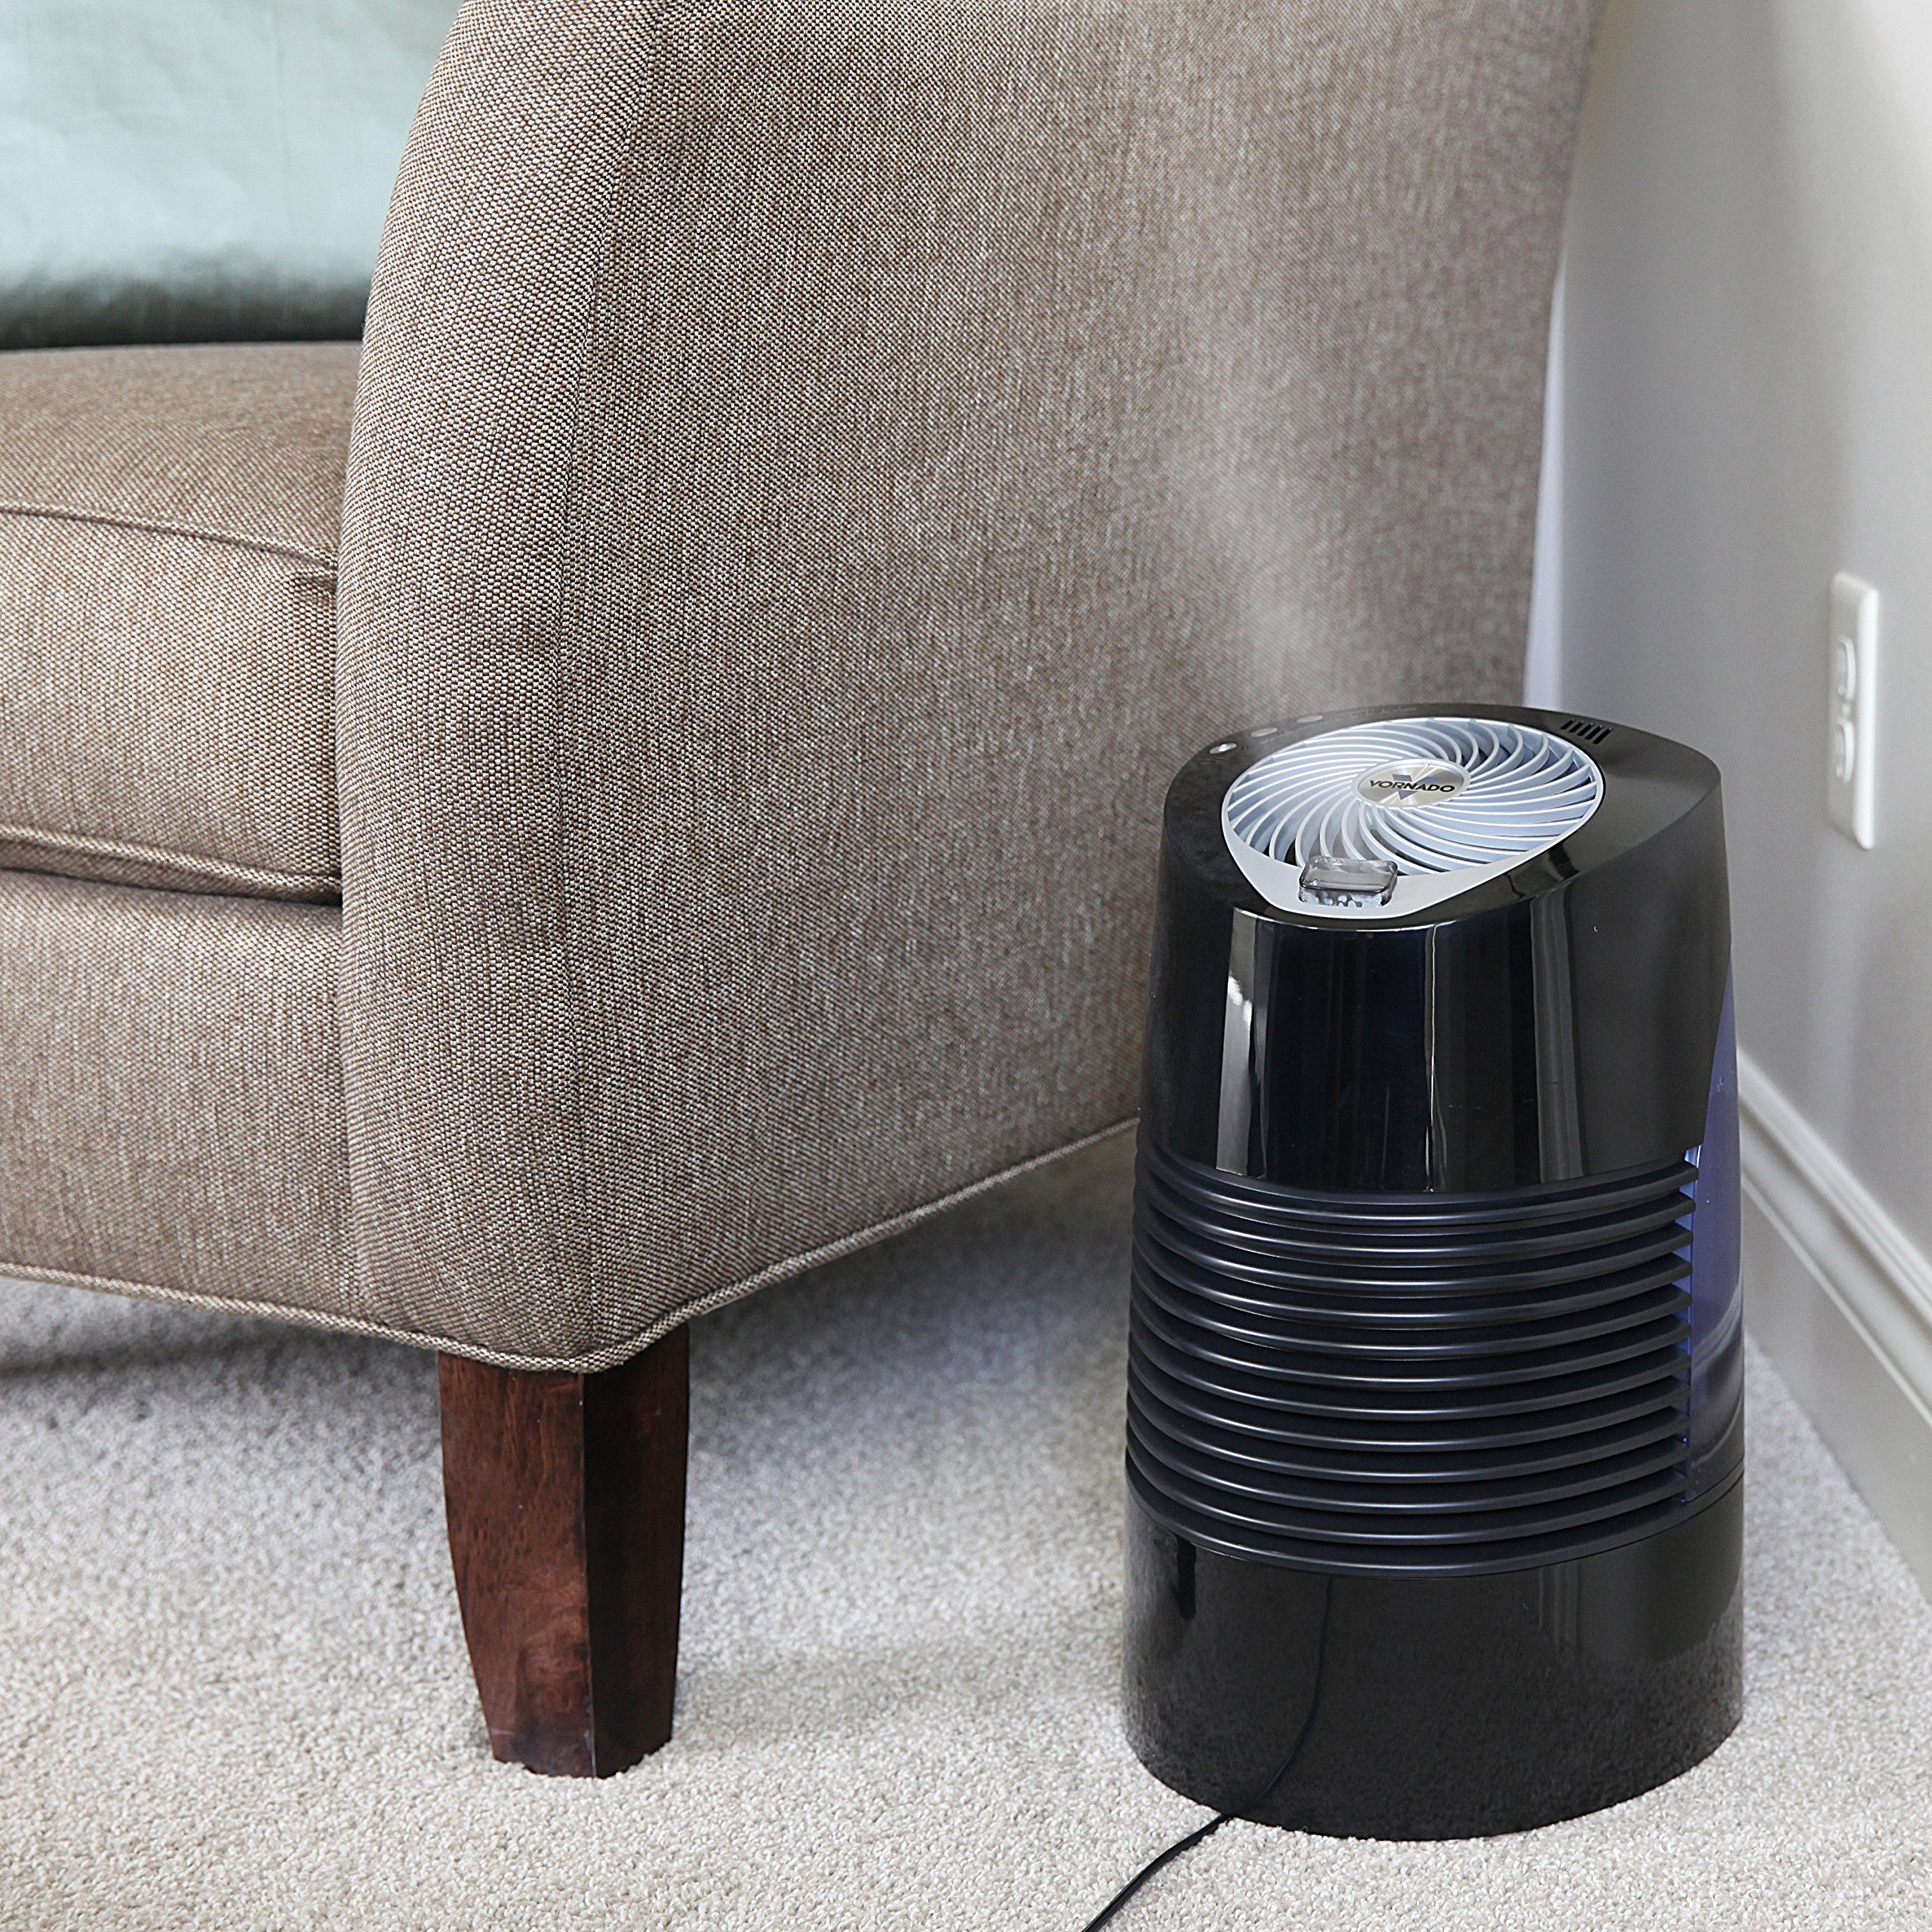 Vornado Ultra3 Whole Room Ultrasonic Humidifier by Vornado